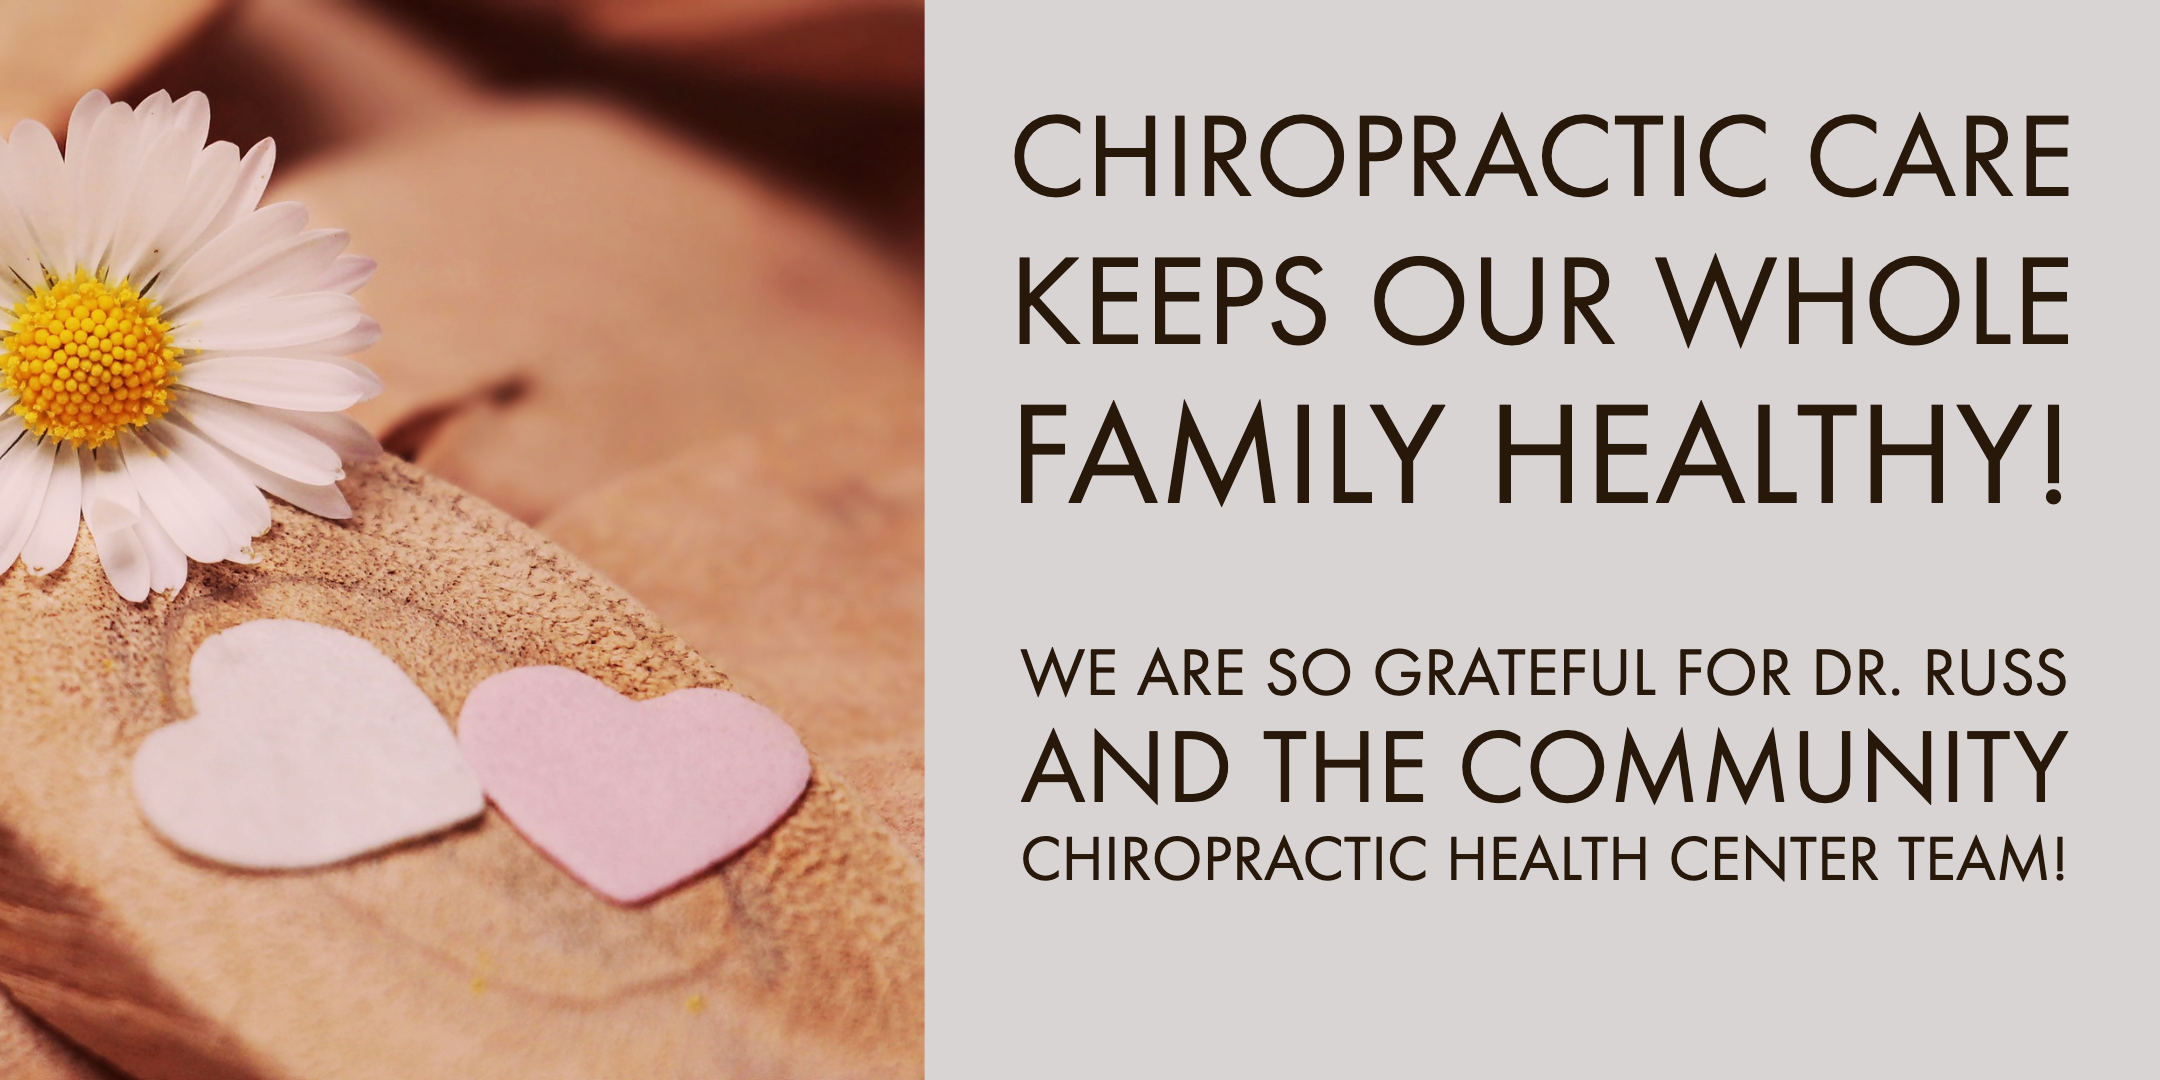 whole family healthy chiropractic .jpg